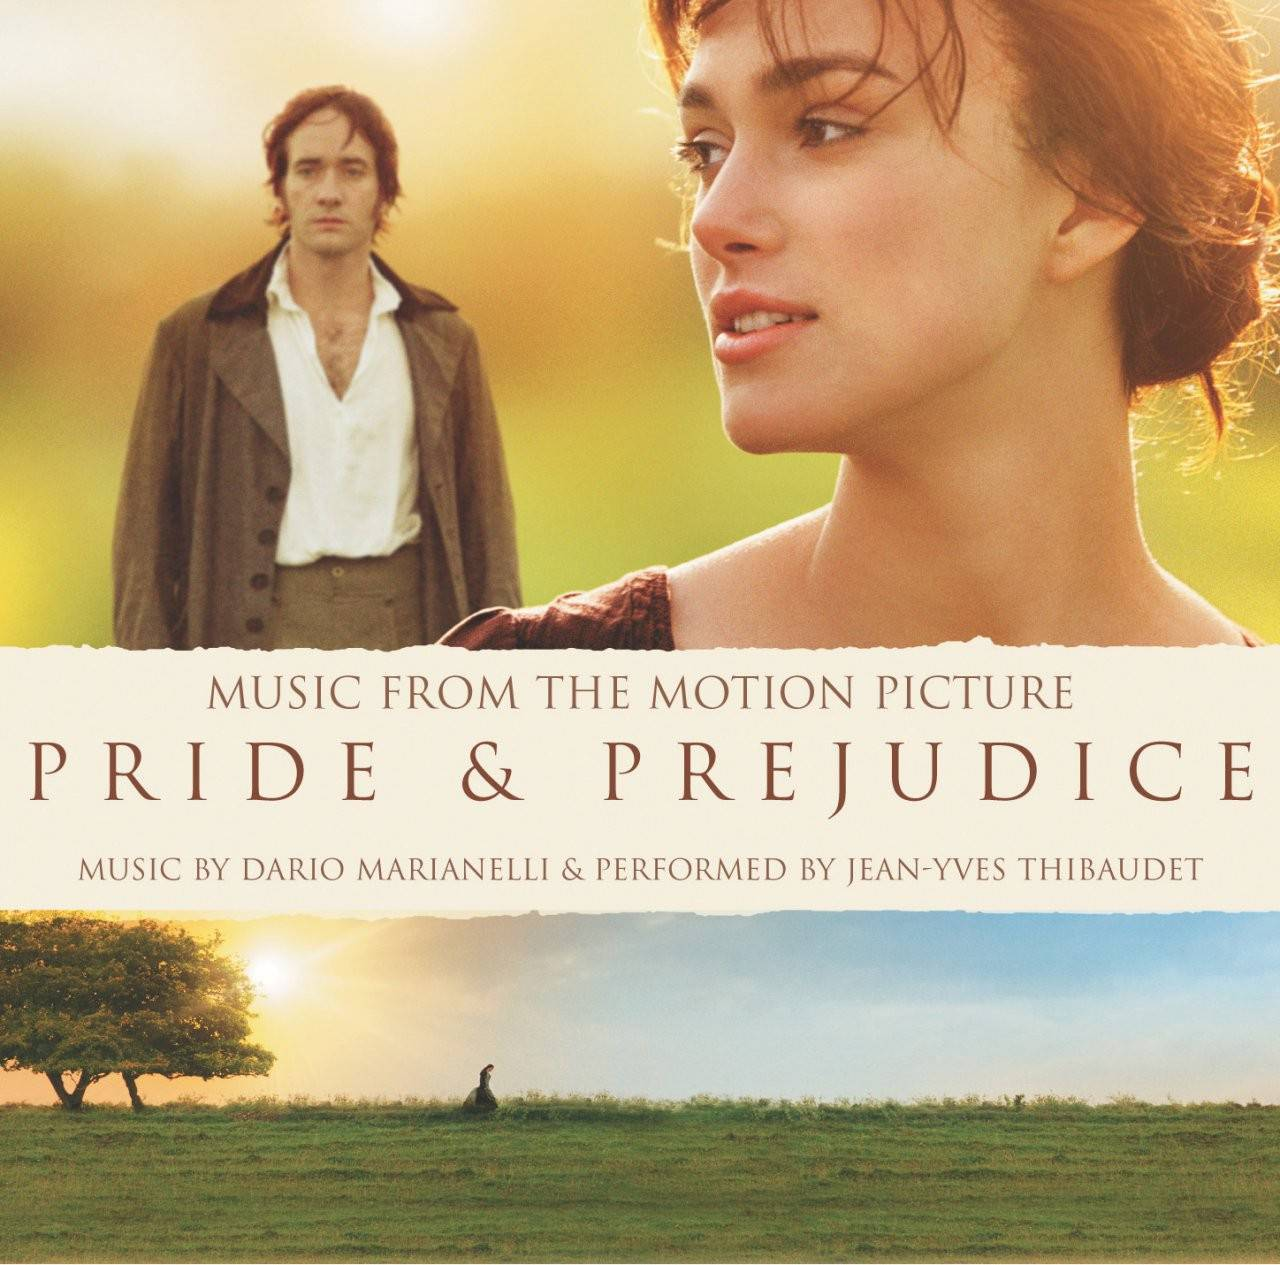 pride and prejudice book vs movie essay paralegal resume objective week 5 pride prejudice comparing the book to the movie pride and prejudice 1 fullsize pride